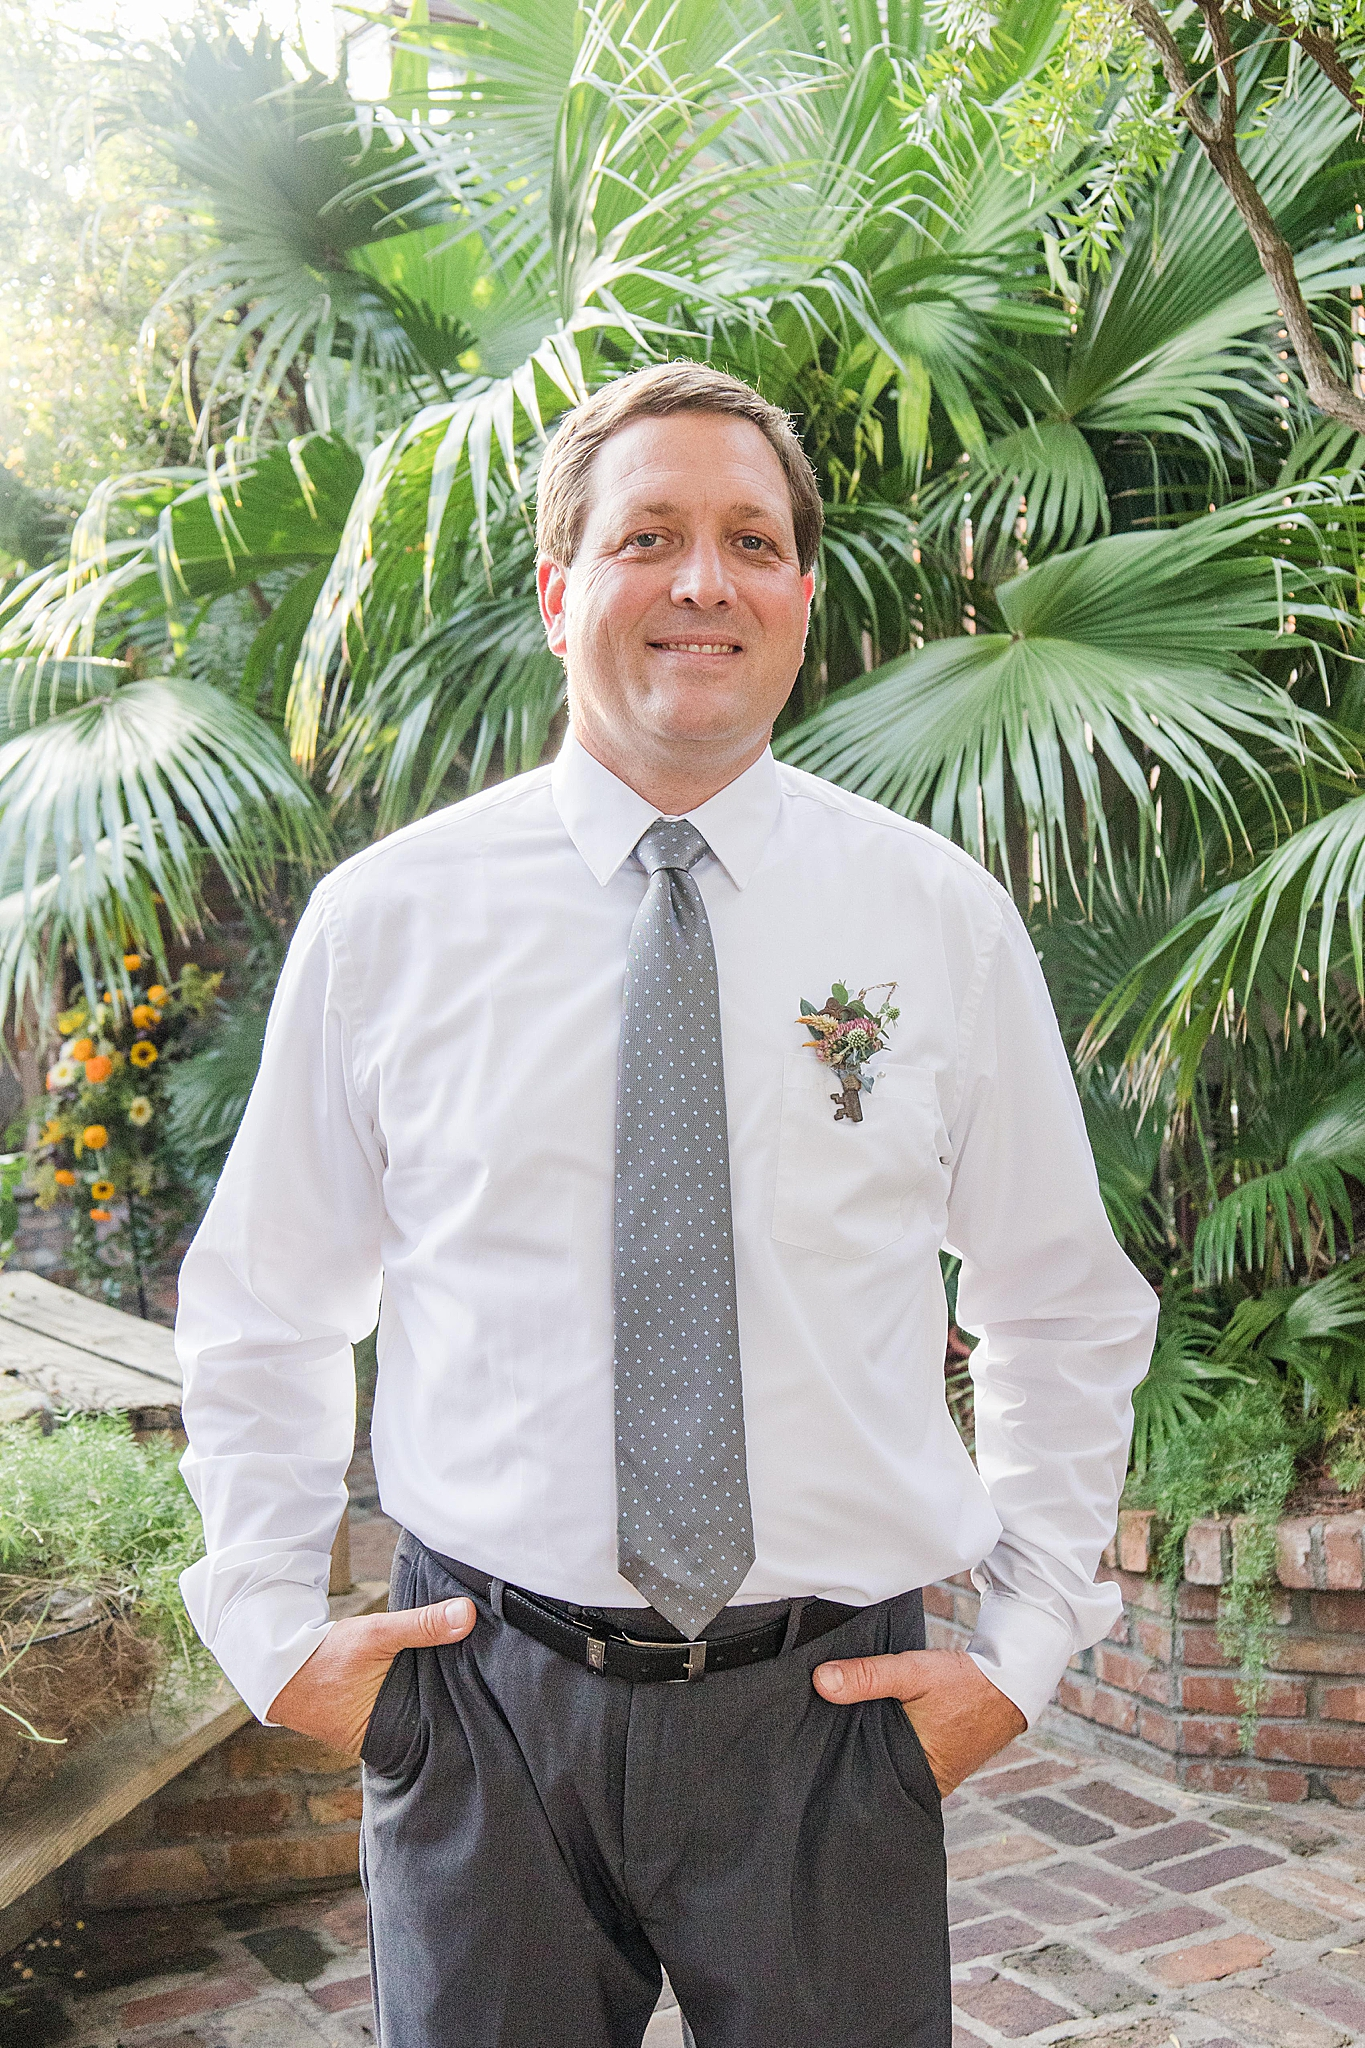 groom poses by palm trees in Florida